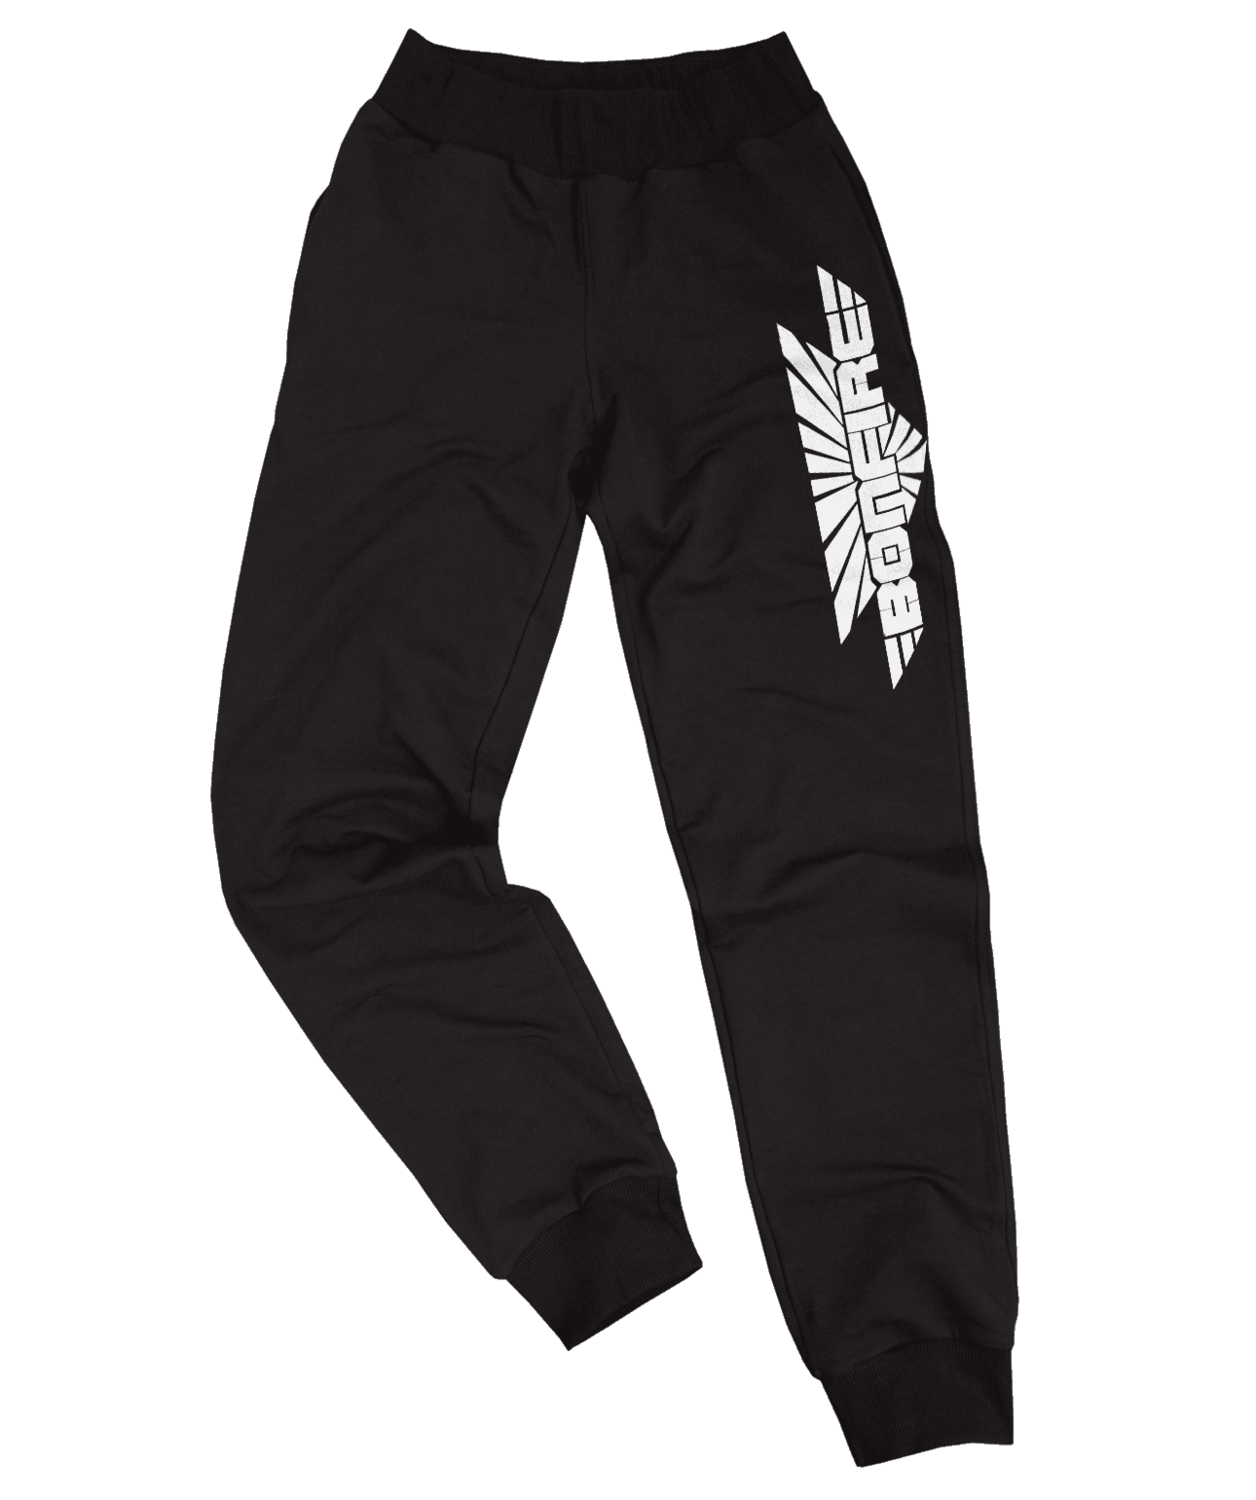 BONFIRE Jogging pants